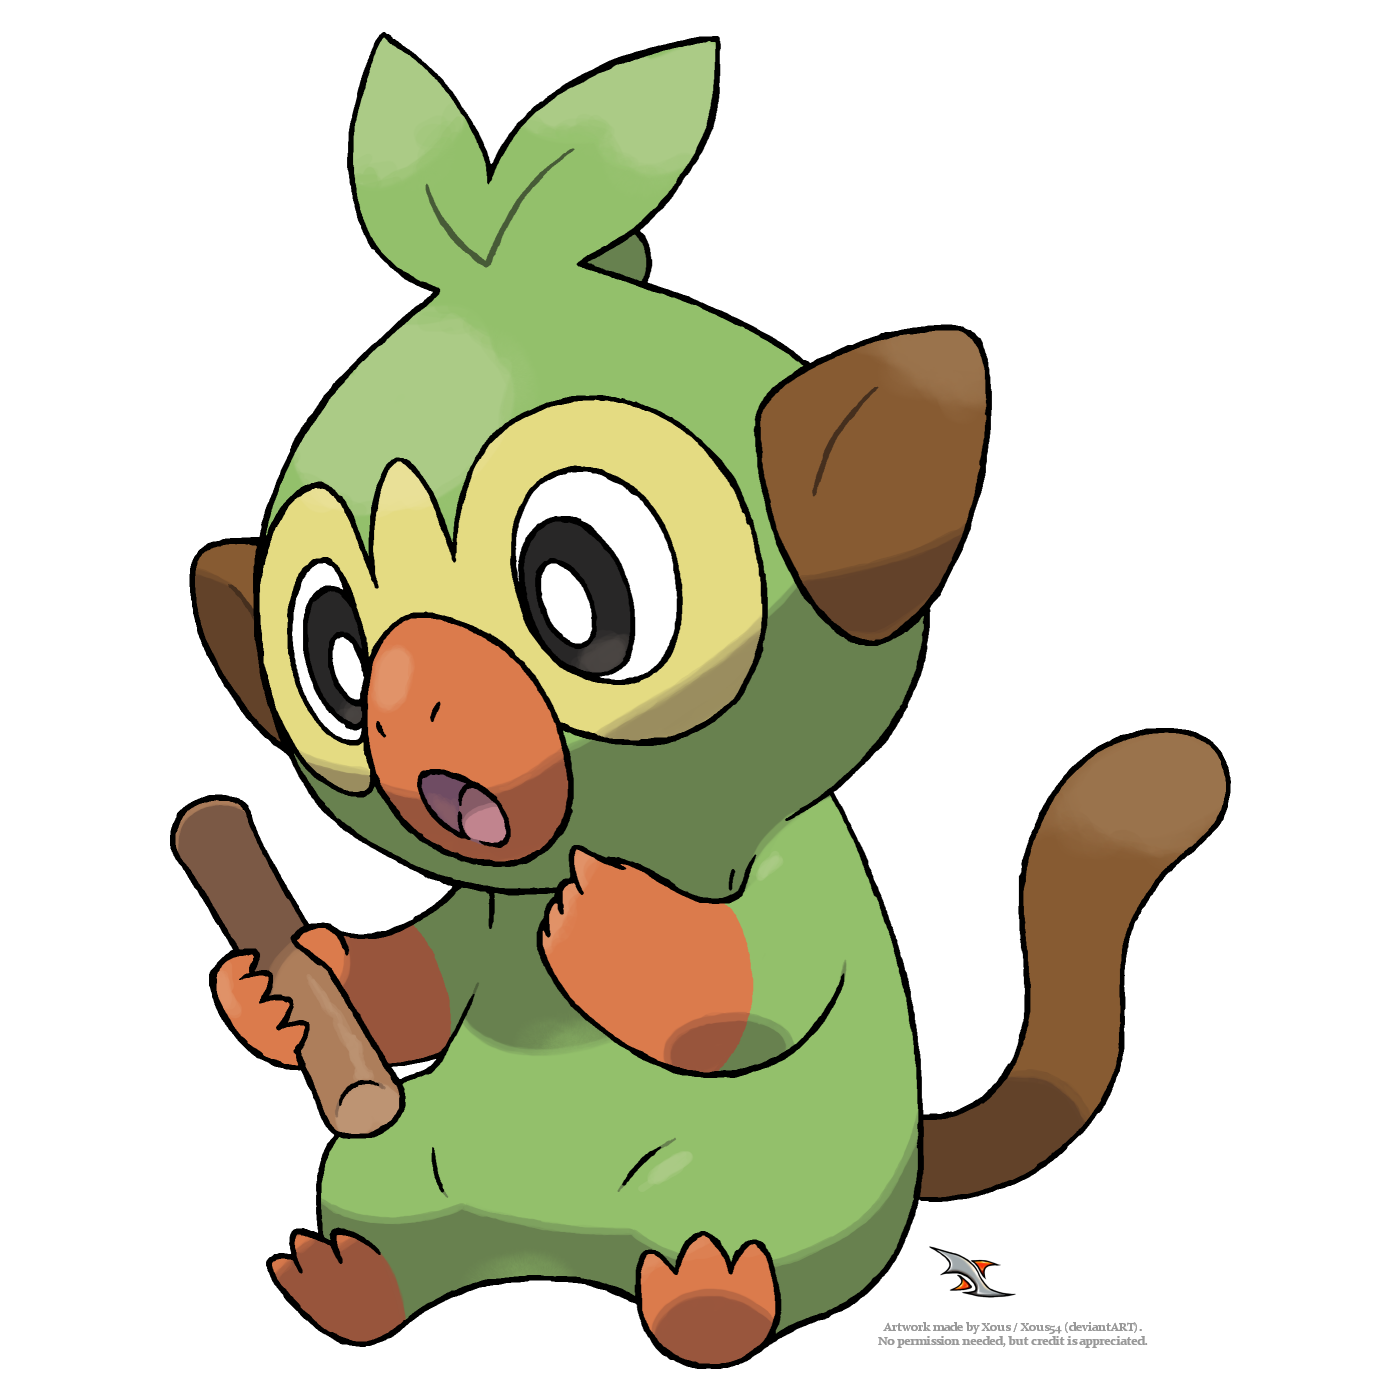 Grookey By Xous54 On Deviantart Press the ← and → keys to navigate the gallery, 'g' to view the gallery, or 'r' to view a random image. grookey by xous54 on deviantart